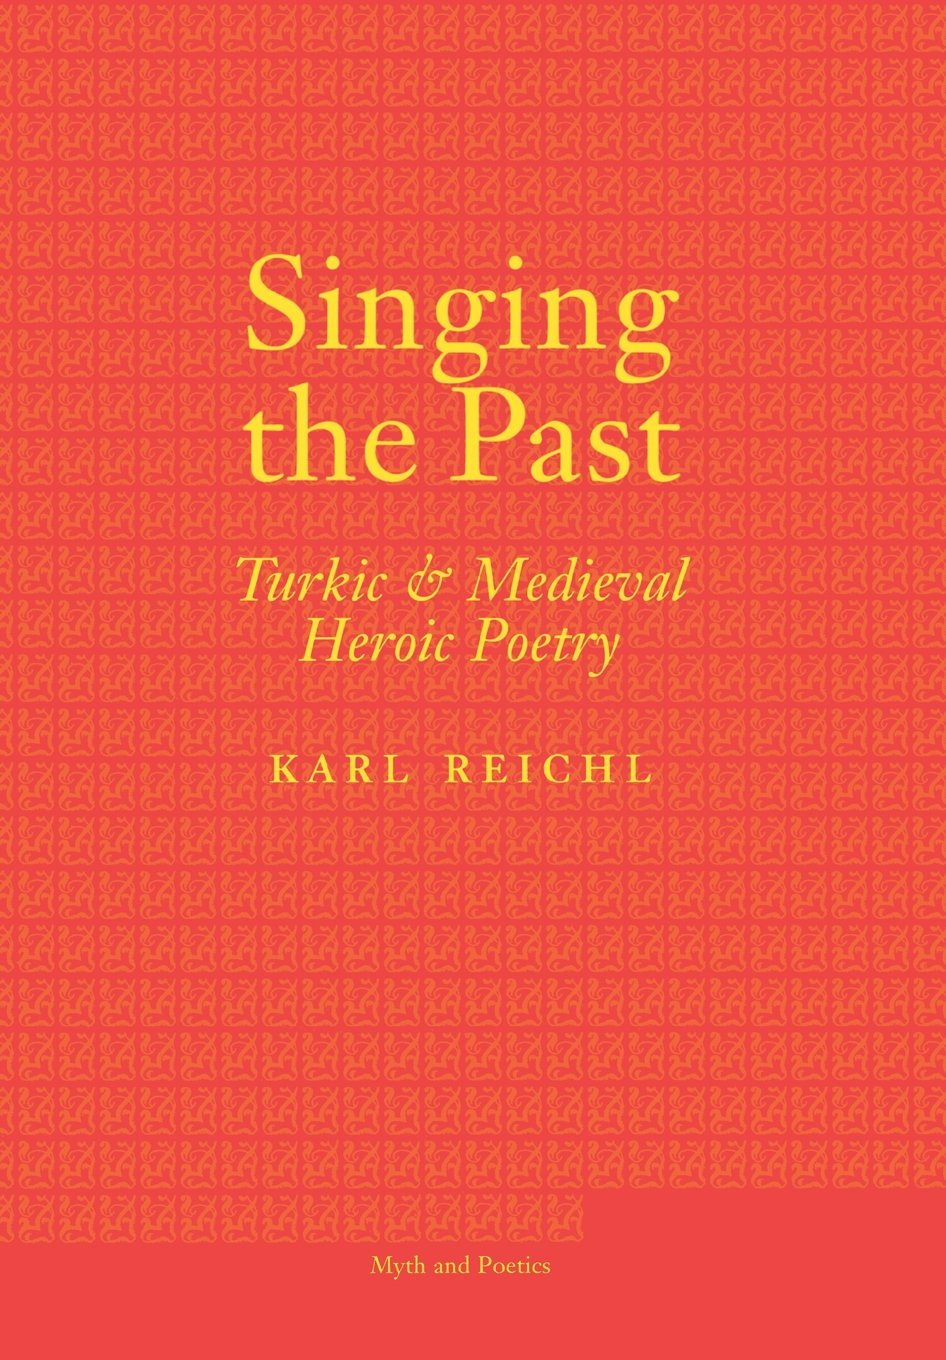 Download Singing the Past: Turkic and Medieval Heroic Poetry (Myth and Poetics) pdf